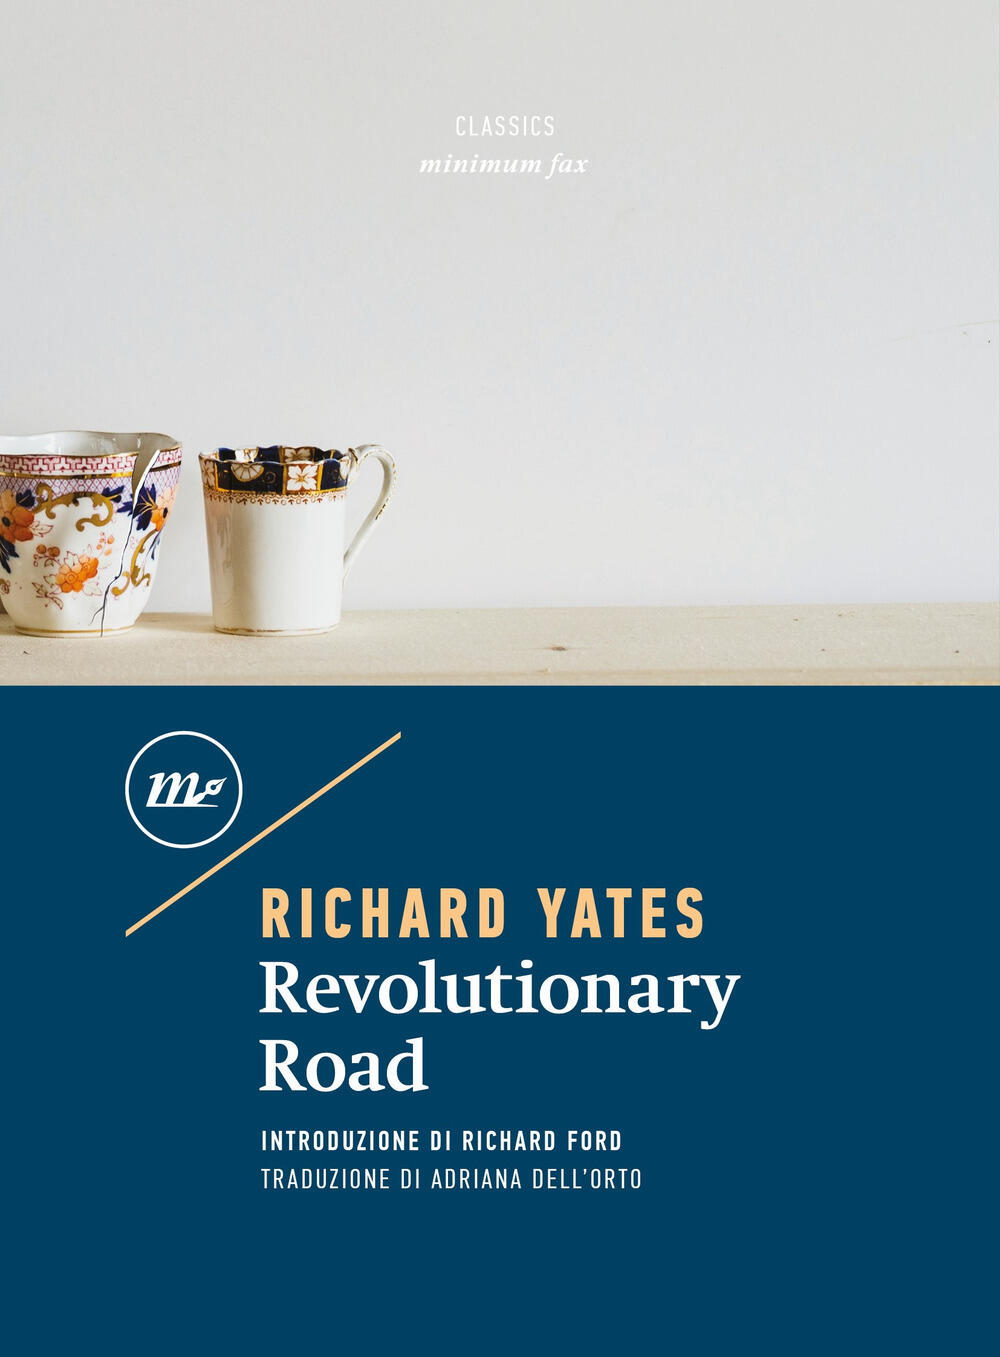 richard yates revolutionary road Revolutionary road (movie tie-in edition):  richard yates shows how frank and april mortgage their spiritual birthright,  50 out of 5 stars revolutionary novel.